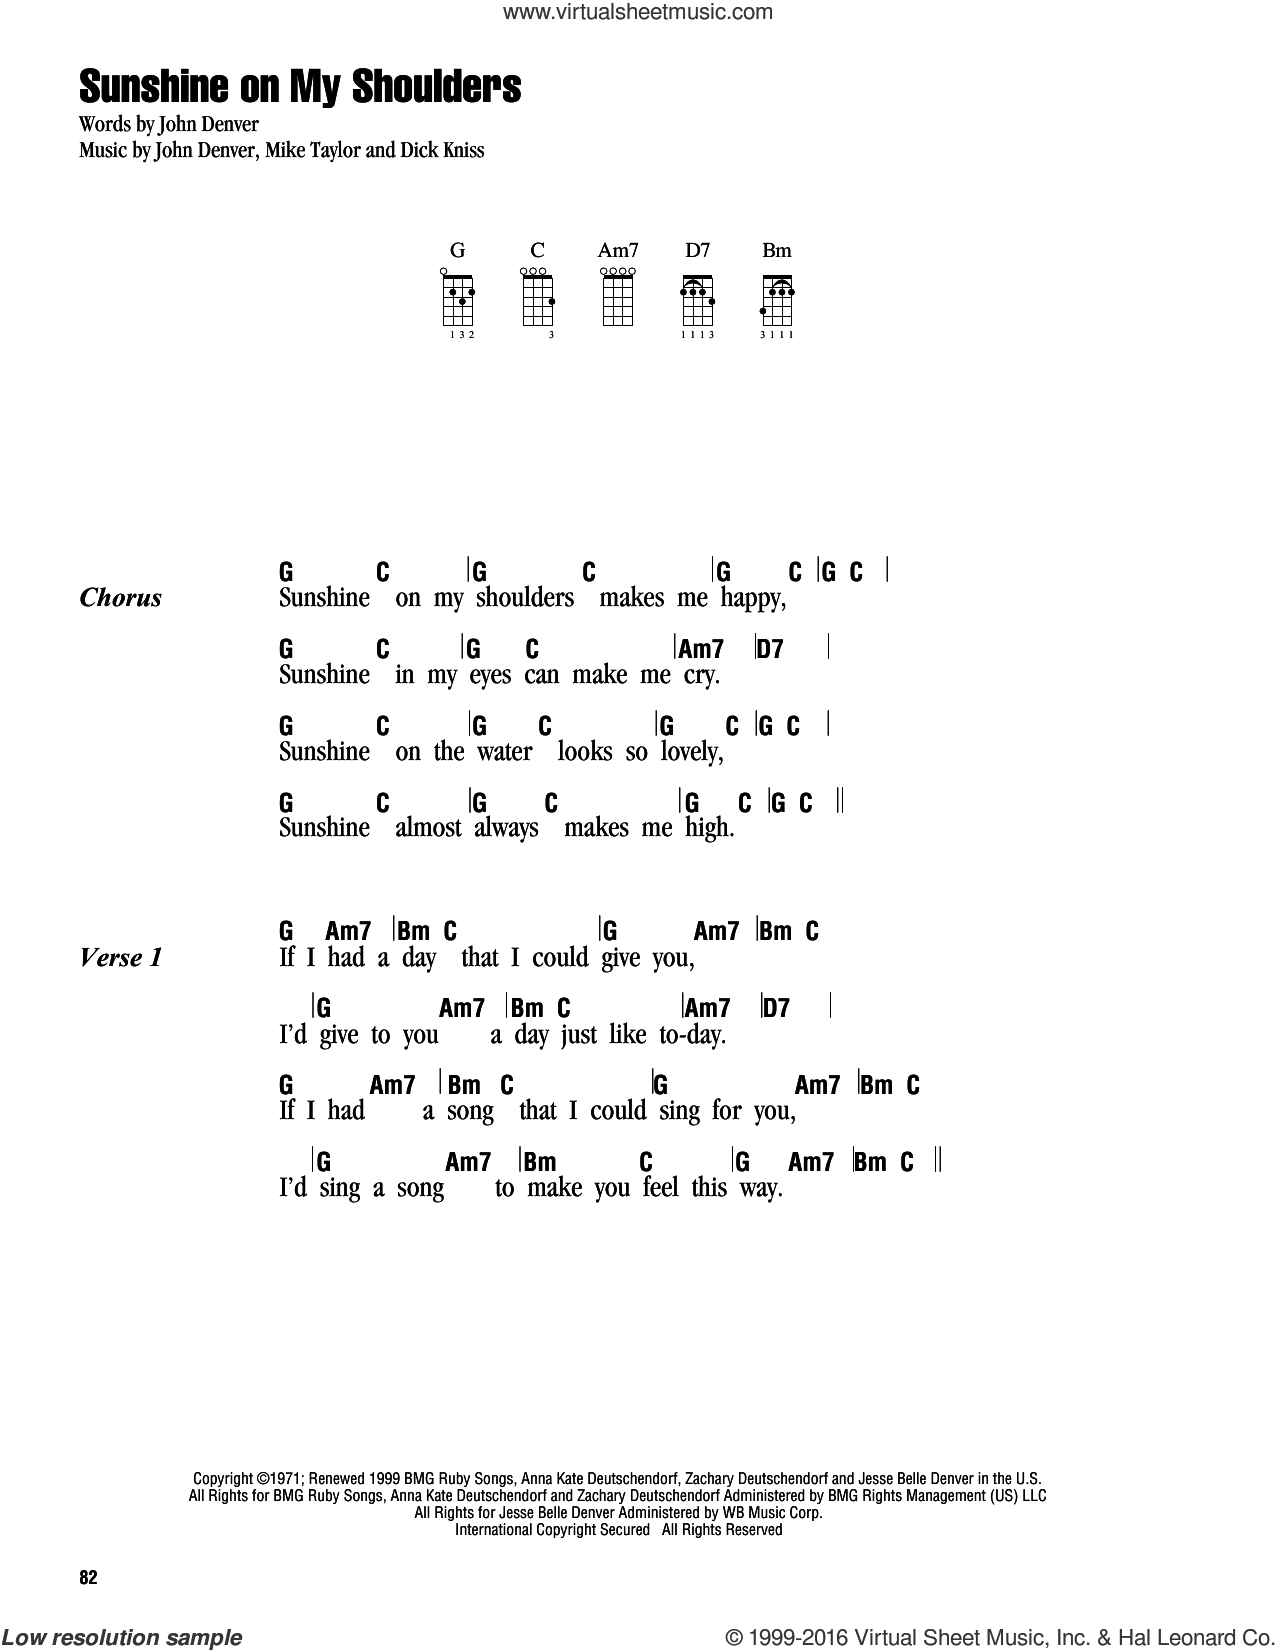 Sunshine On My Shoulders sheet music for ukulele (chords) by John Denver, Dick Kniss and Mike Taylor, intermediate skill level